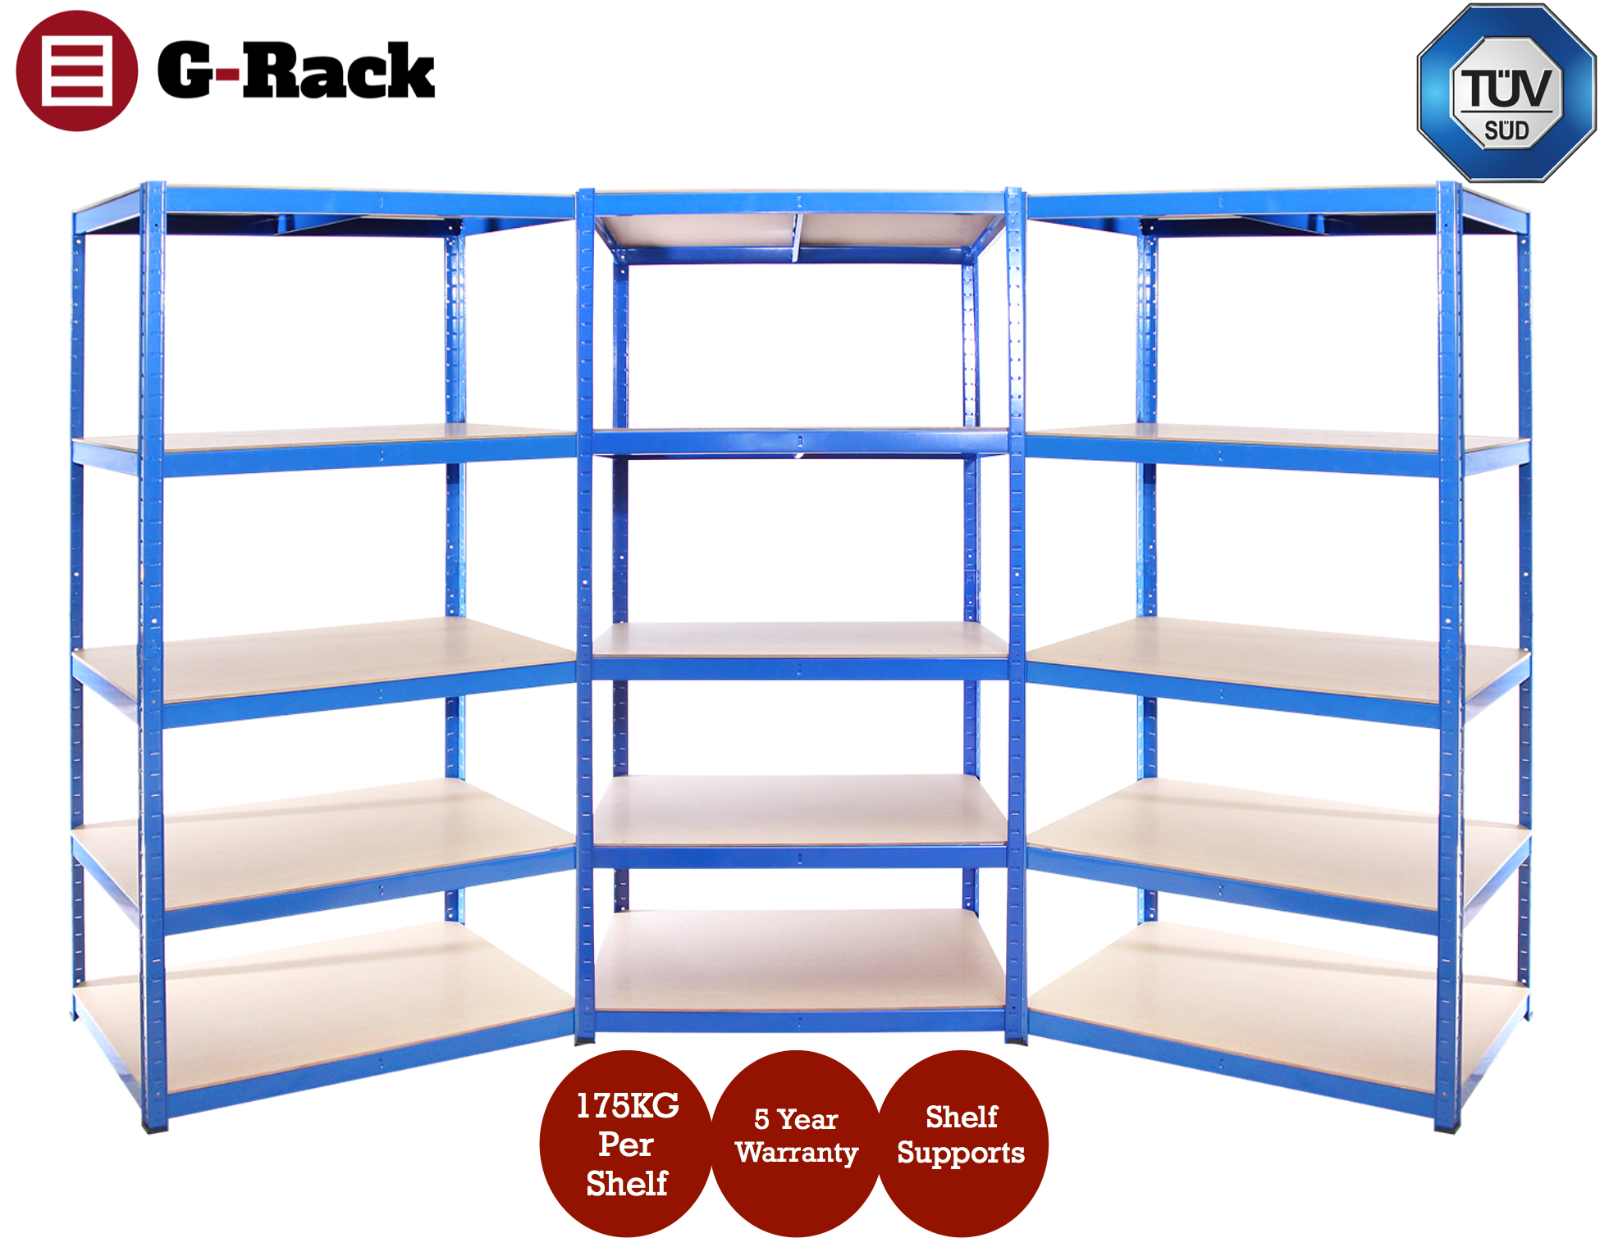 3 Bays of Steel 180x90x40cm Blue Garage Shed Shelving Racking Storage Units